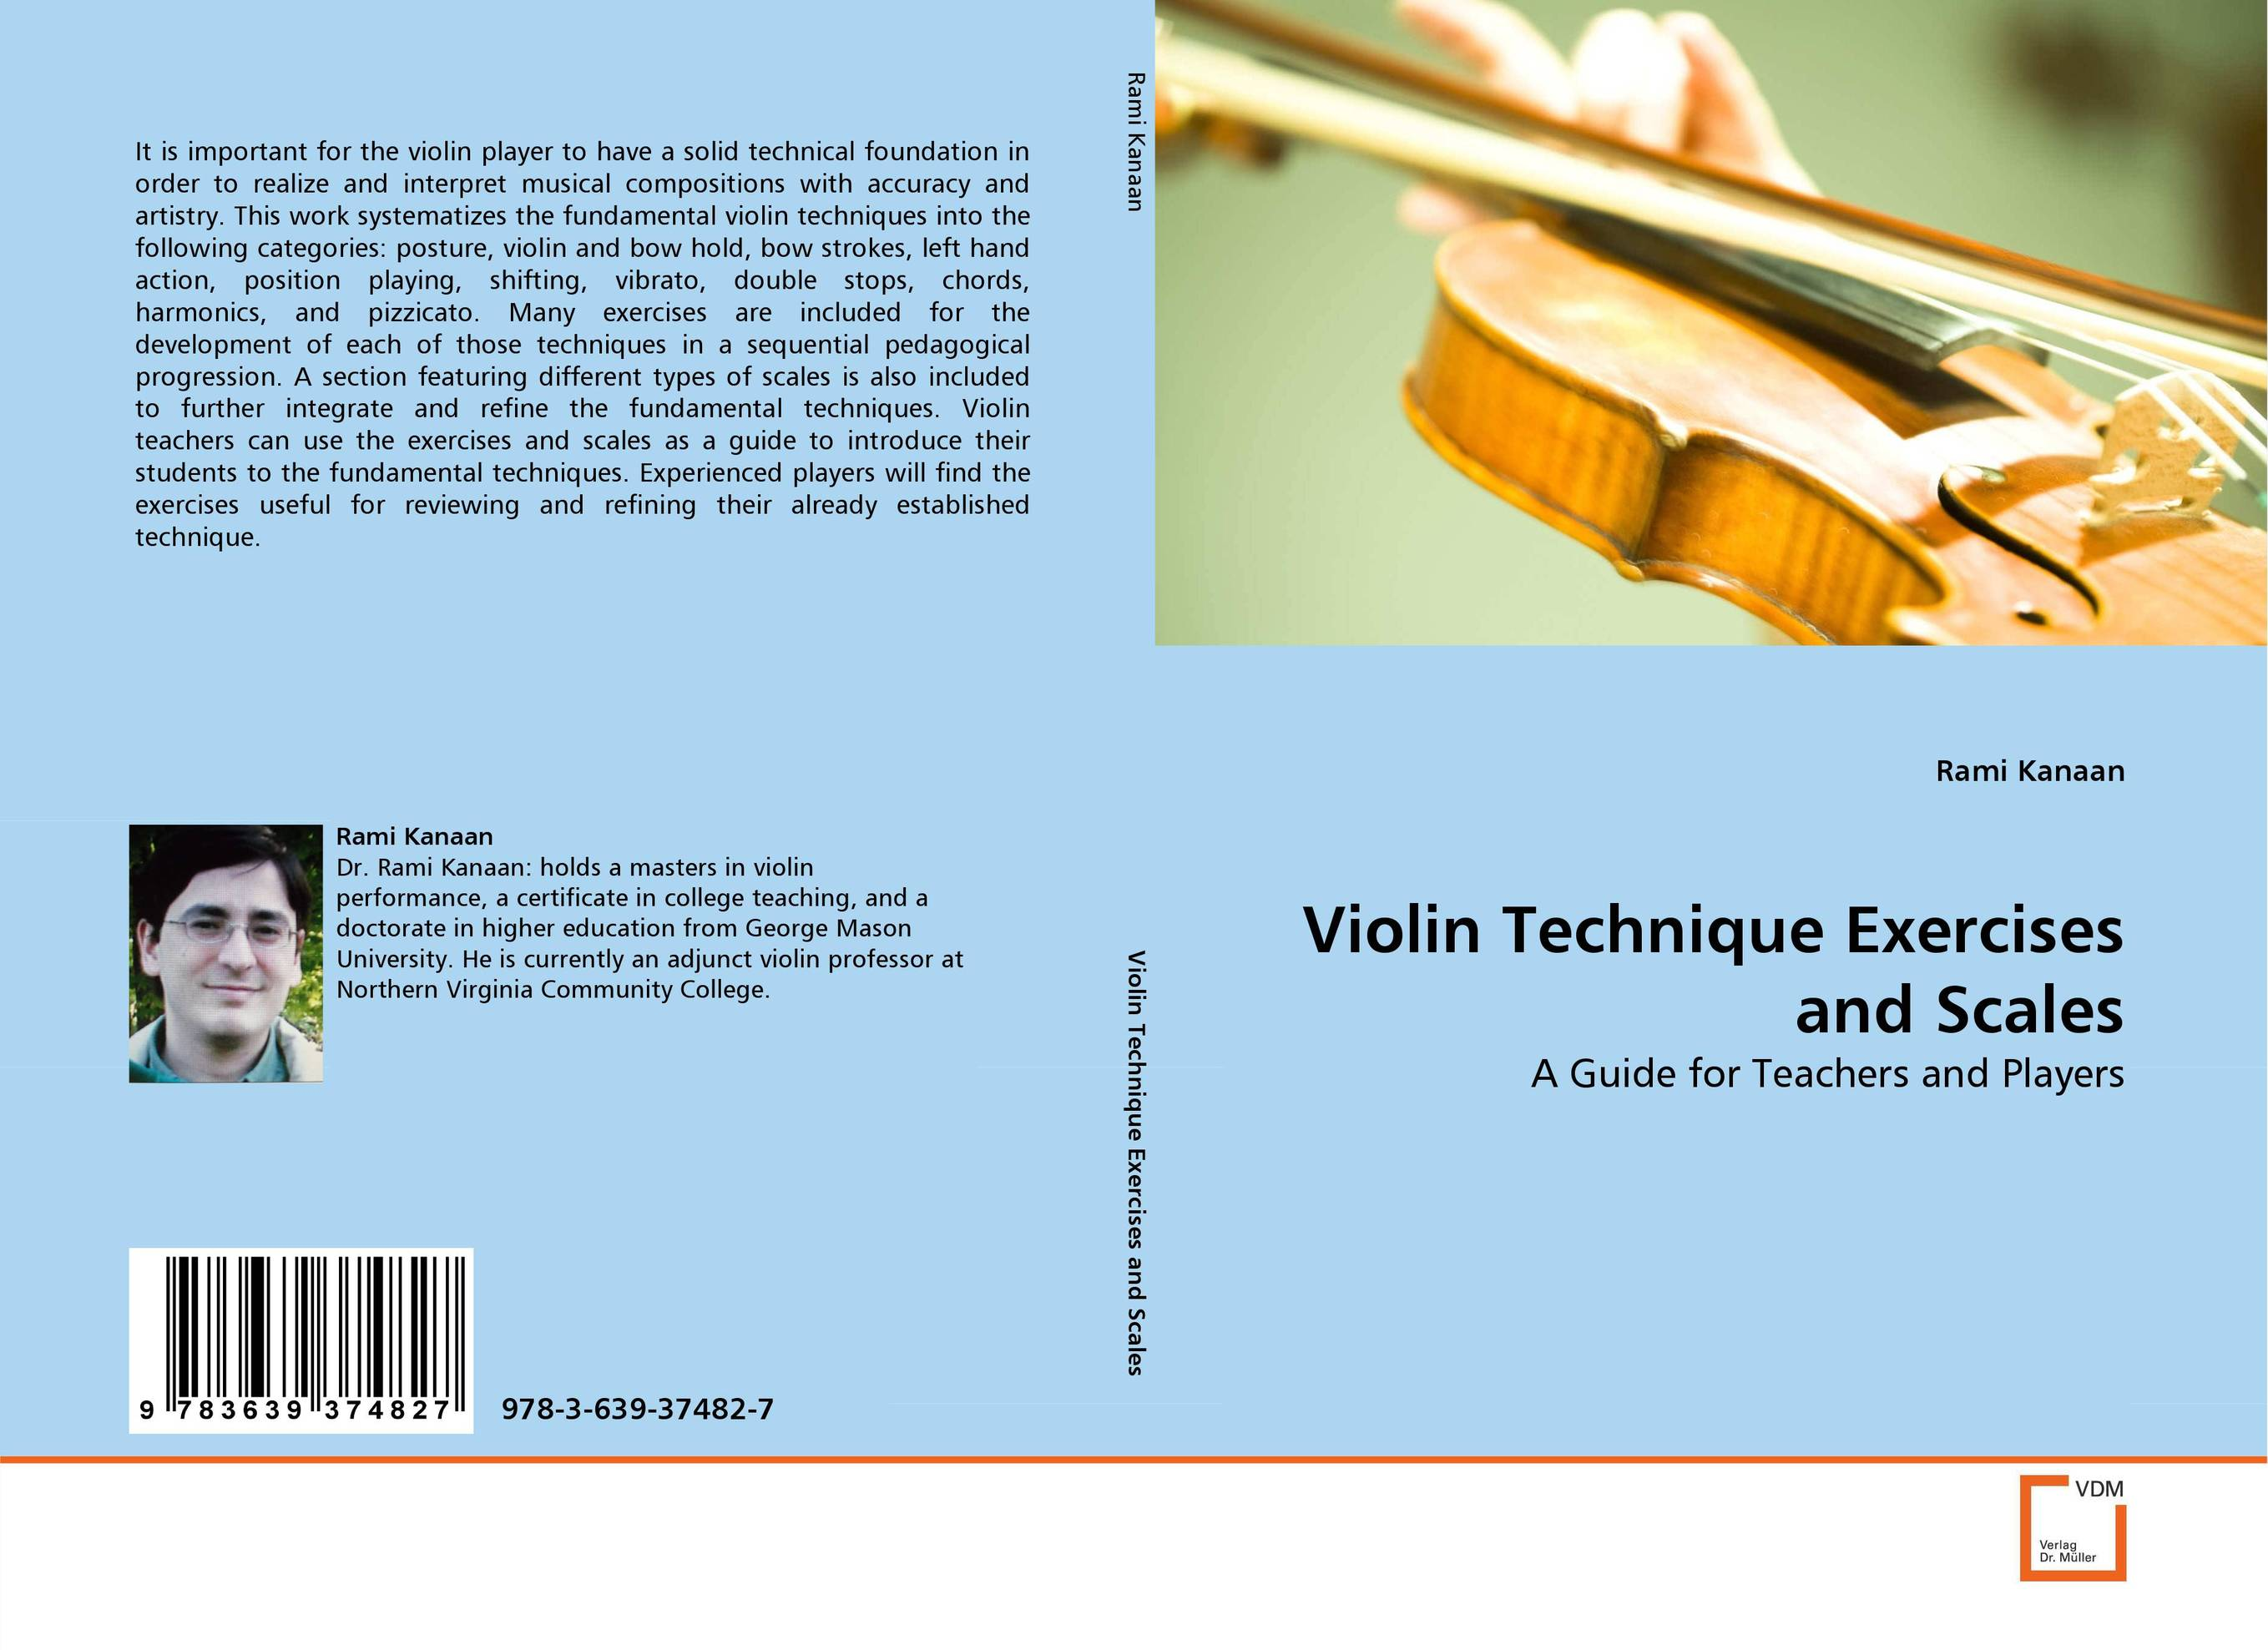 Violin Technique Exercises and Scales 140v 4 4 full size diamond carbon fiber violin bow ebony frog nickel silver mounted mongolia horsehair violin parts accessoreis